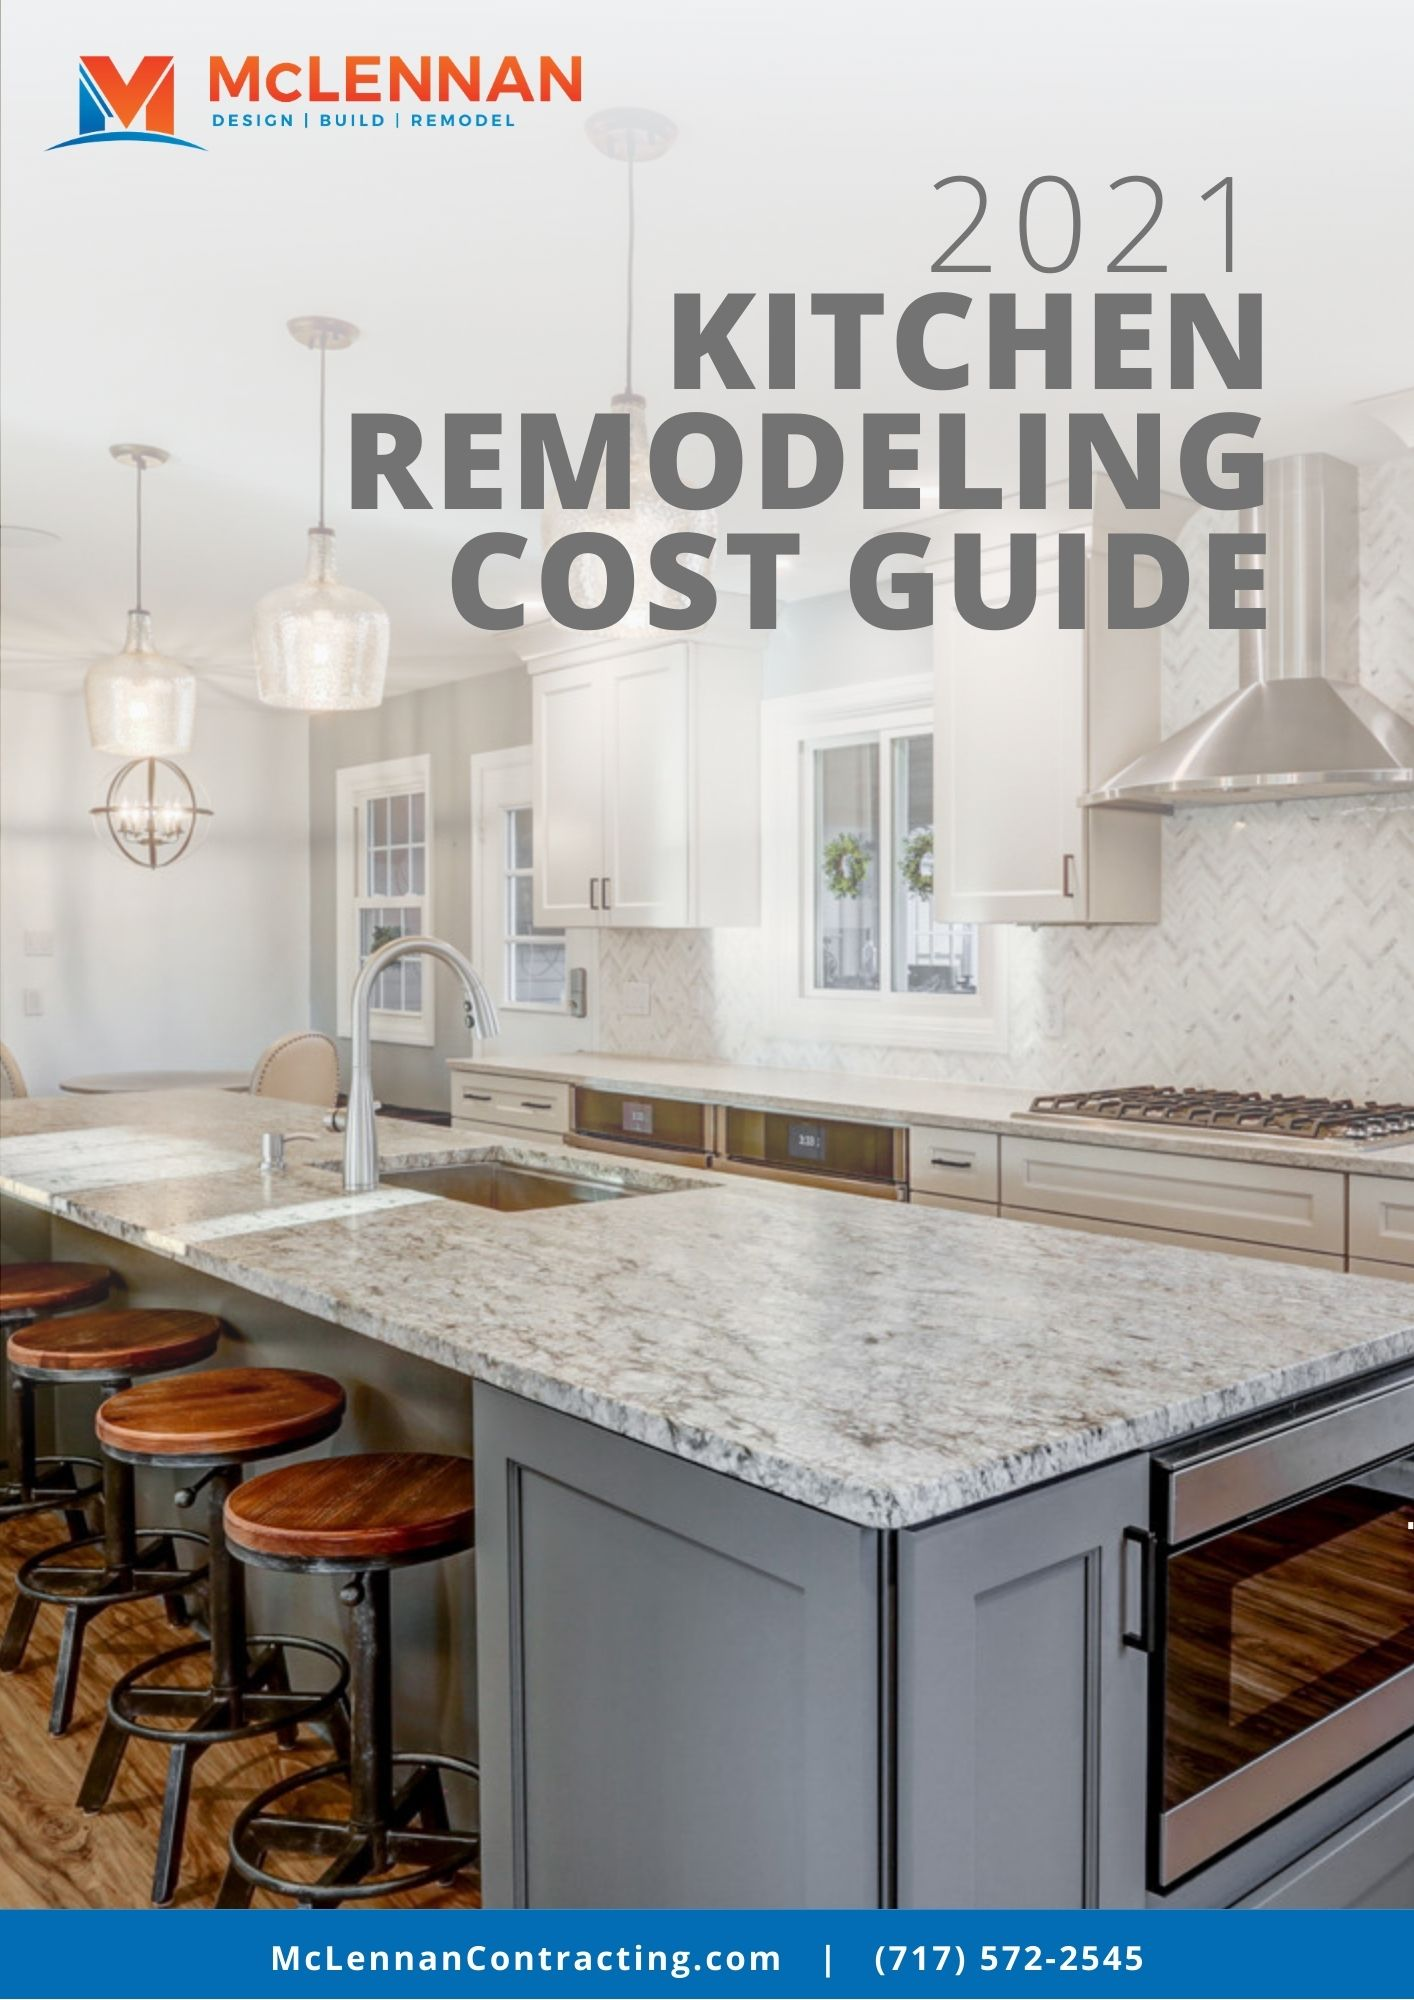 2021 Kitchen Remodeling Cost Guide-McLennan Contracting